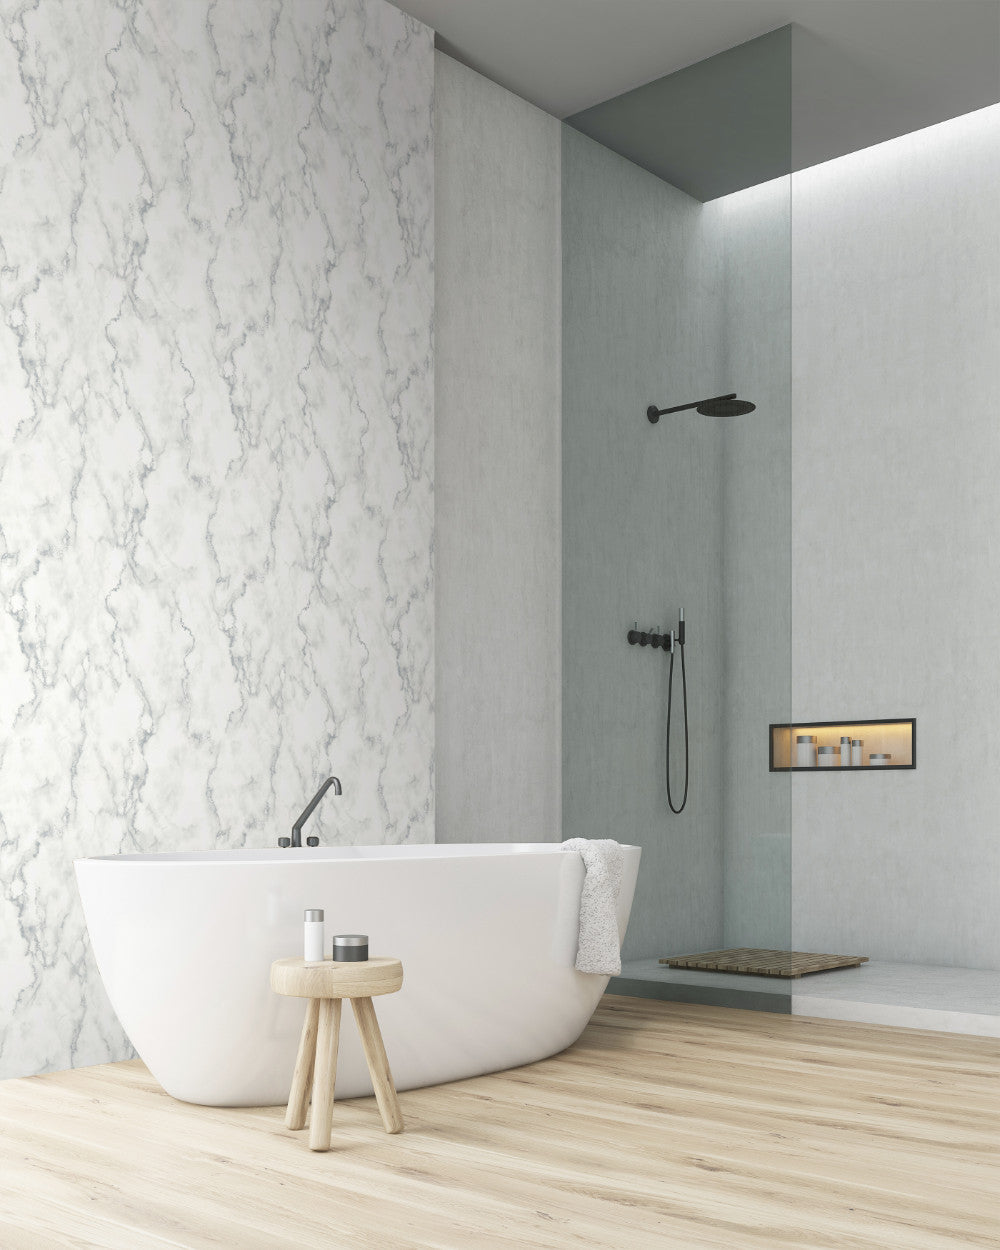 Peel And Stick Textured Wallpaper: Marble Texture Peel-and-Stick Wallpaper In Grey And White